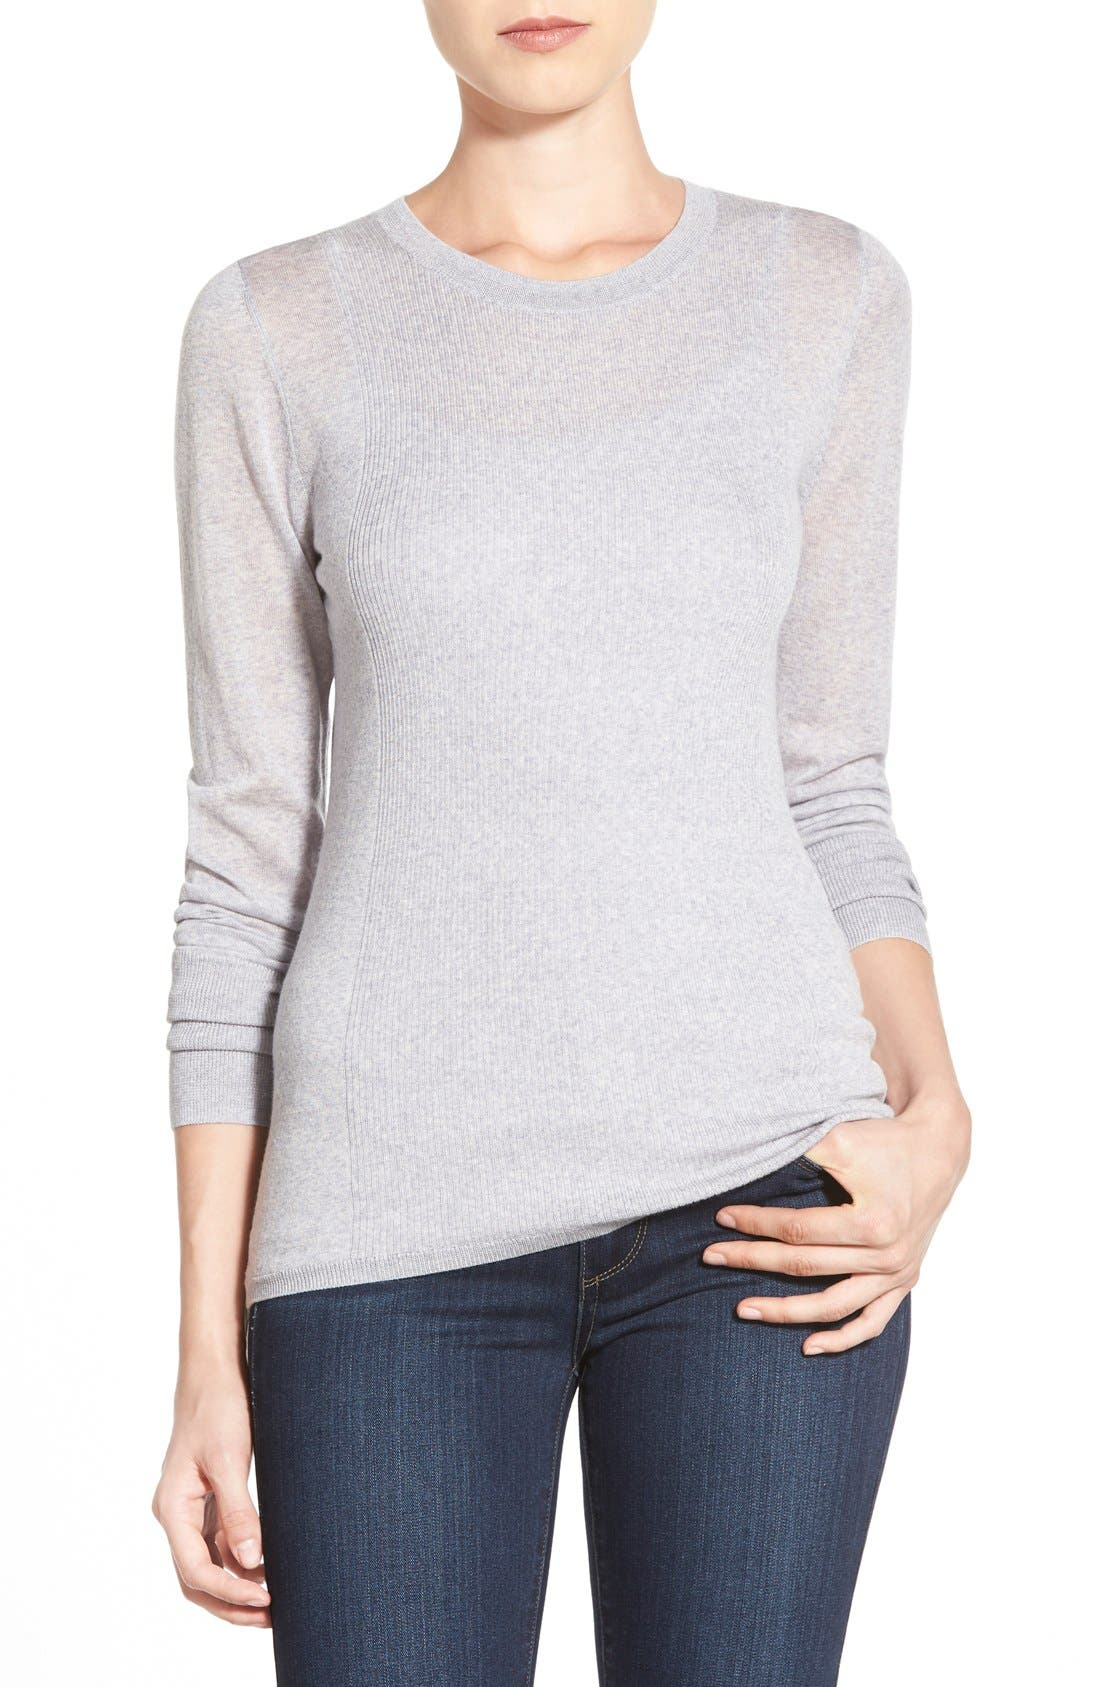 Alternate Image 1 Selected - Halogen® Rib Detail Lightweight Merino Wool Sweater (Regular & Petite)